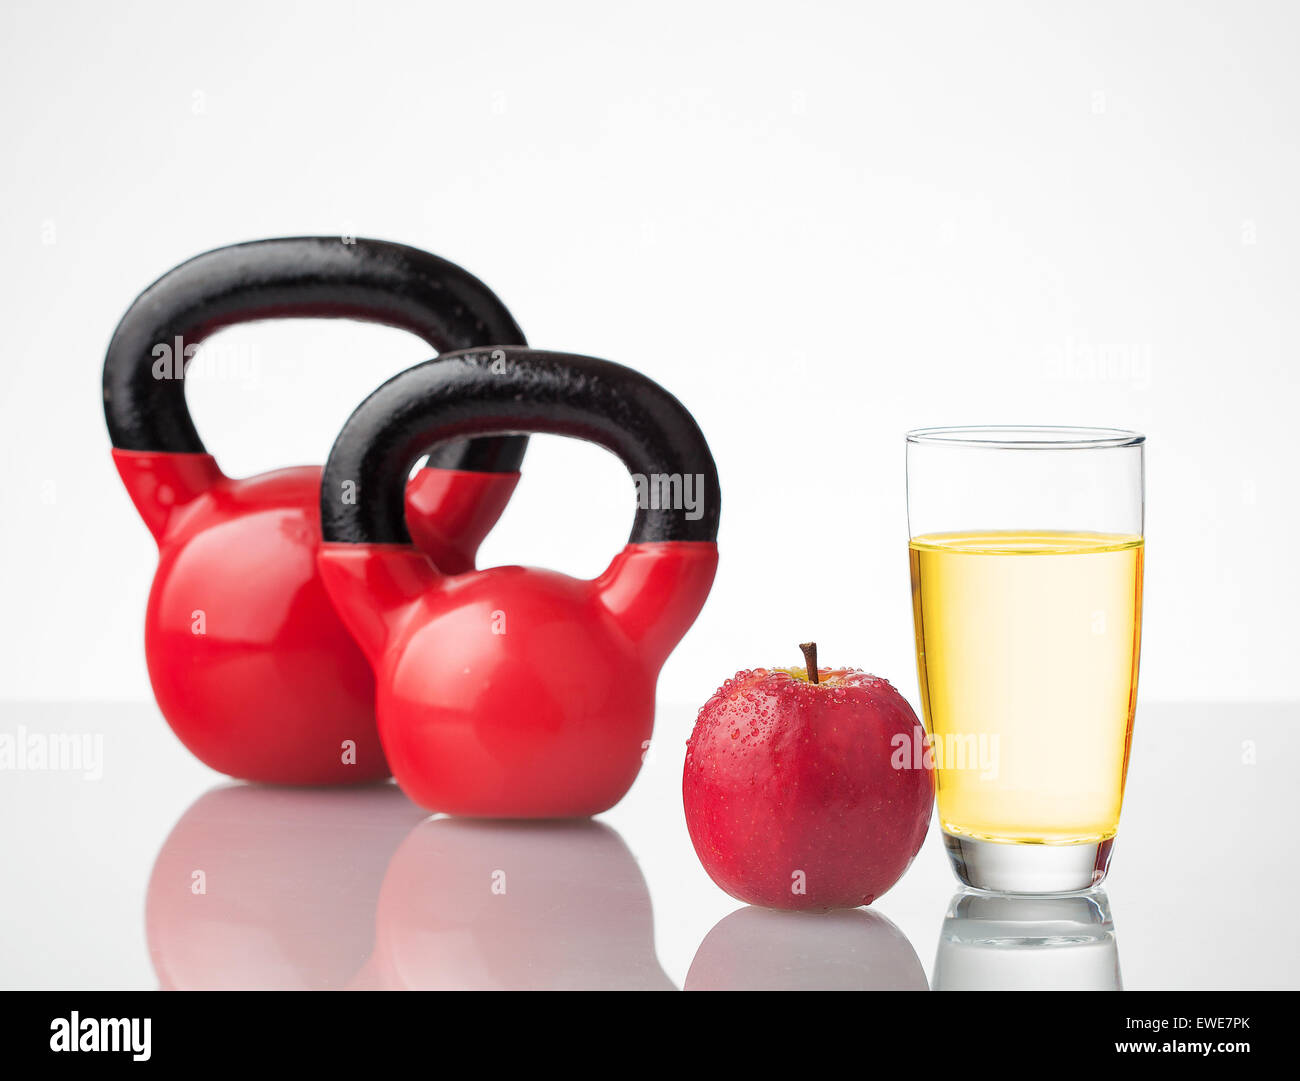 Red apple, juice, and kettlebells on reflective surface. - Stock Image